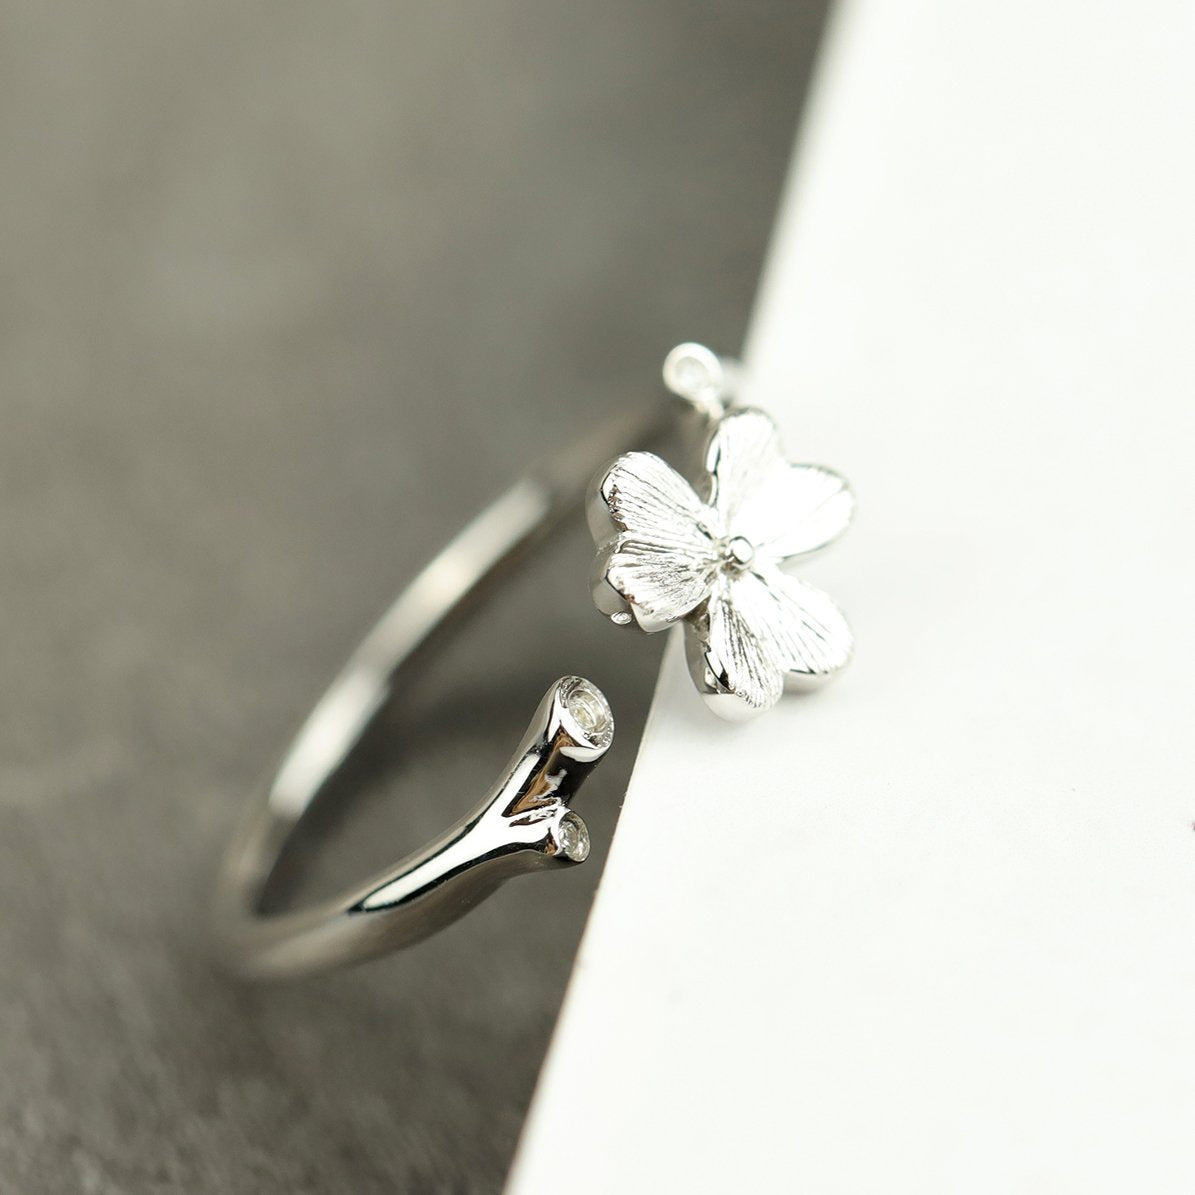 Chic Clover Silver Open Ring